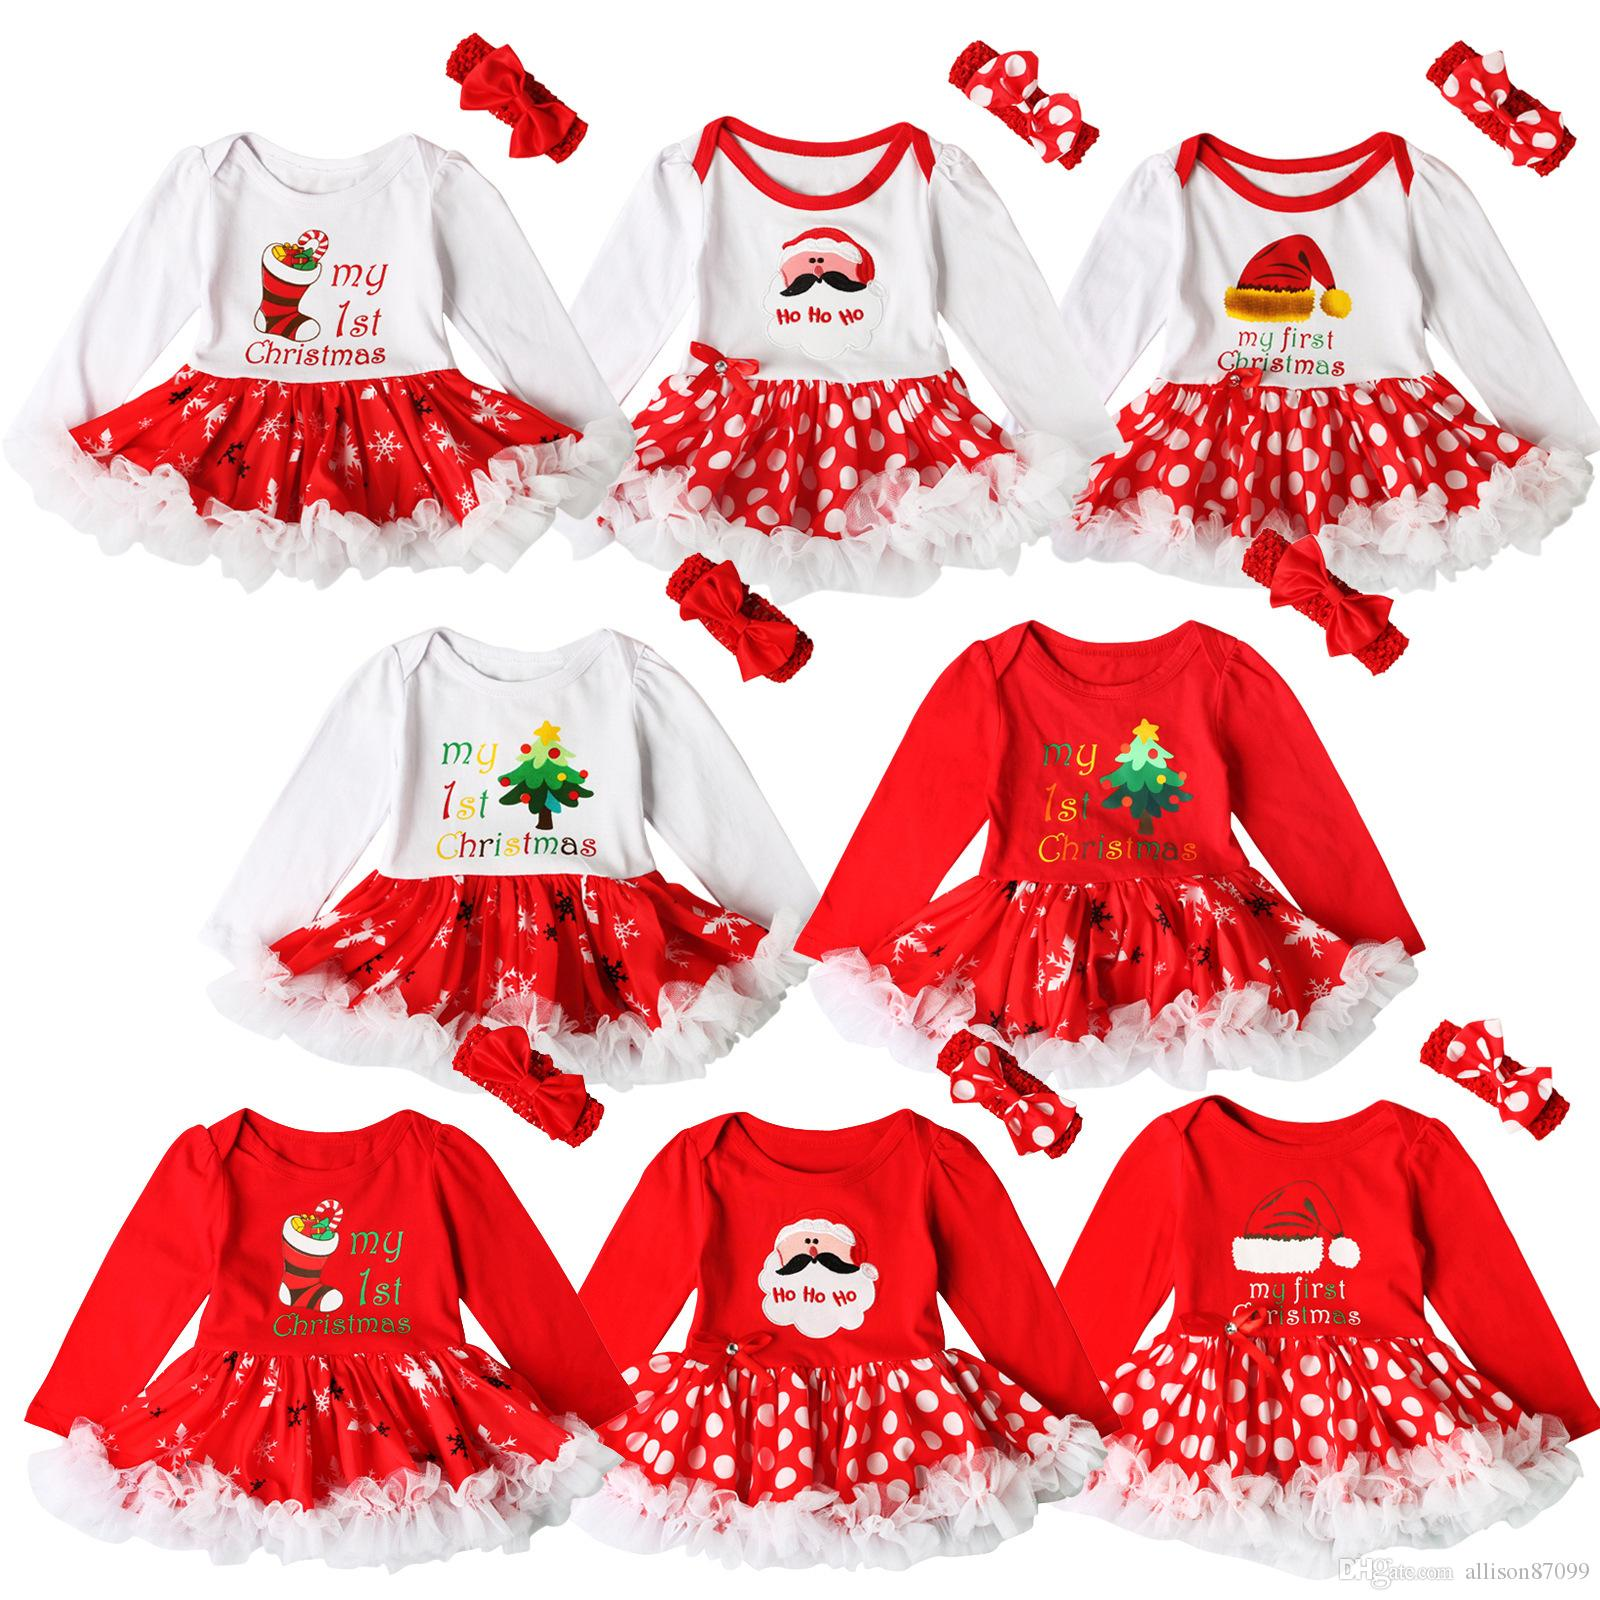 f5ea5d03f8845 INS Baby girls Christmas Red Romper tutu dress 2pcs sets My 1st Christmas  Letters Dots dress With bow headband Infants cute Outfits